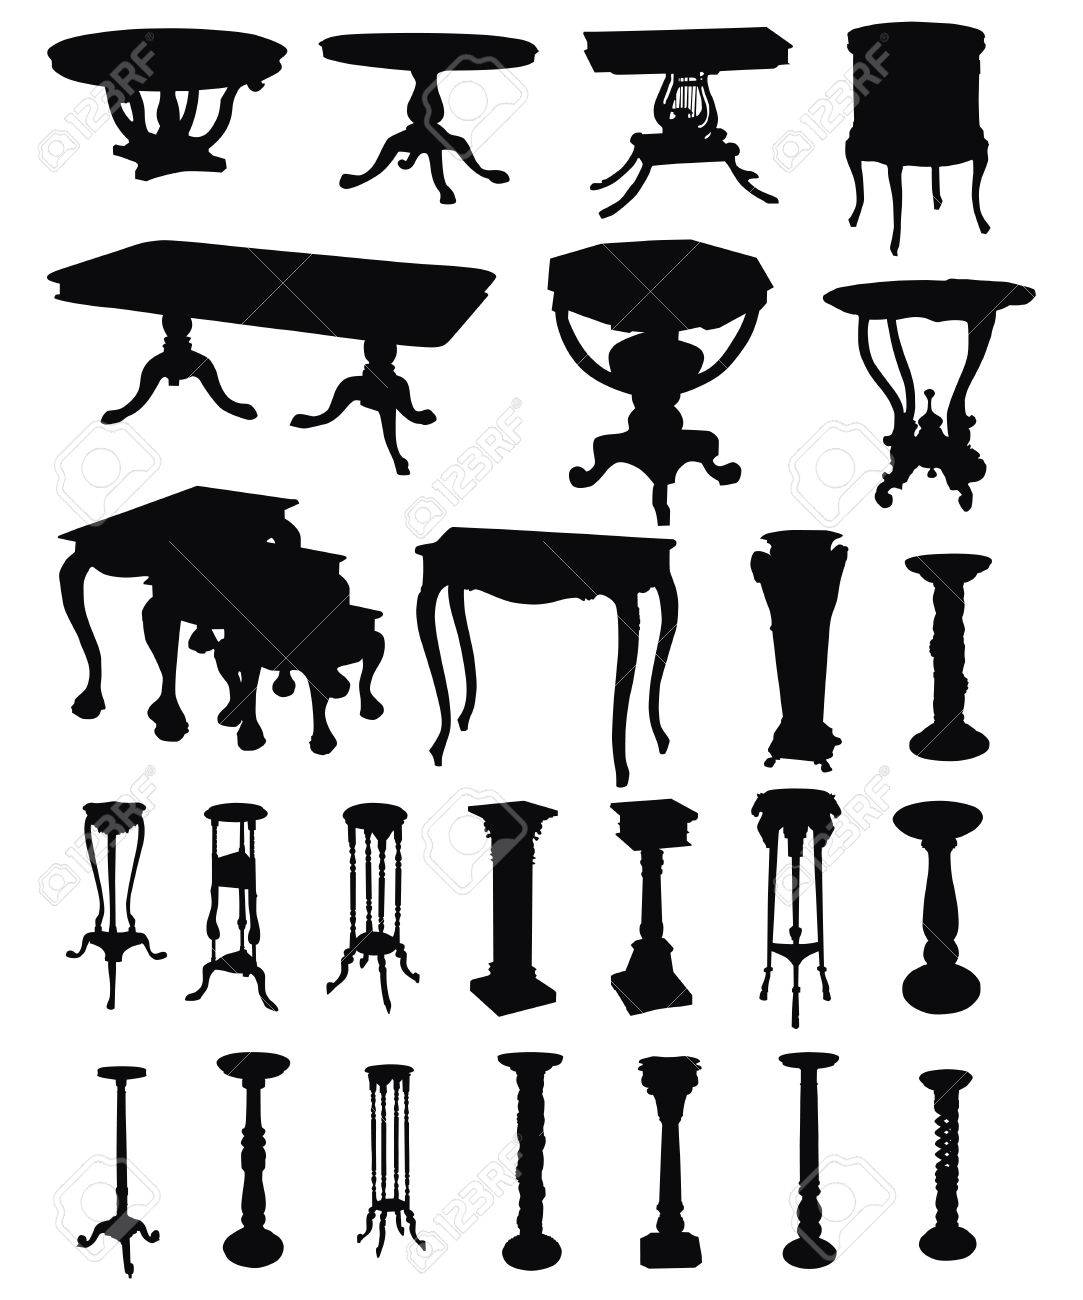 Antique chair silhouette - Vintage Furniture Illustrations Of Antique Tables Silhouettes On A White Background